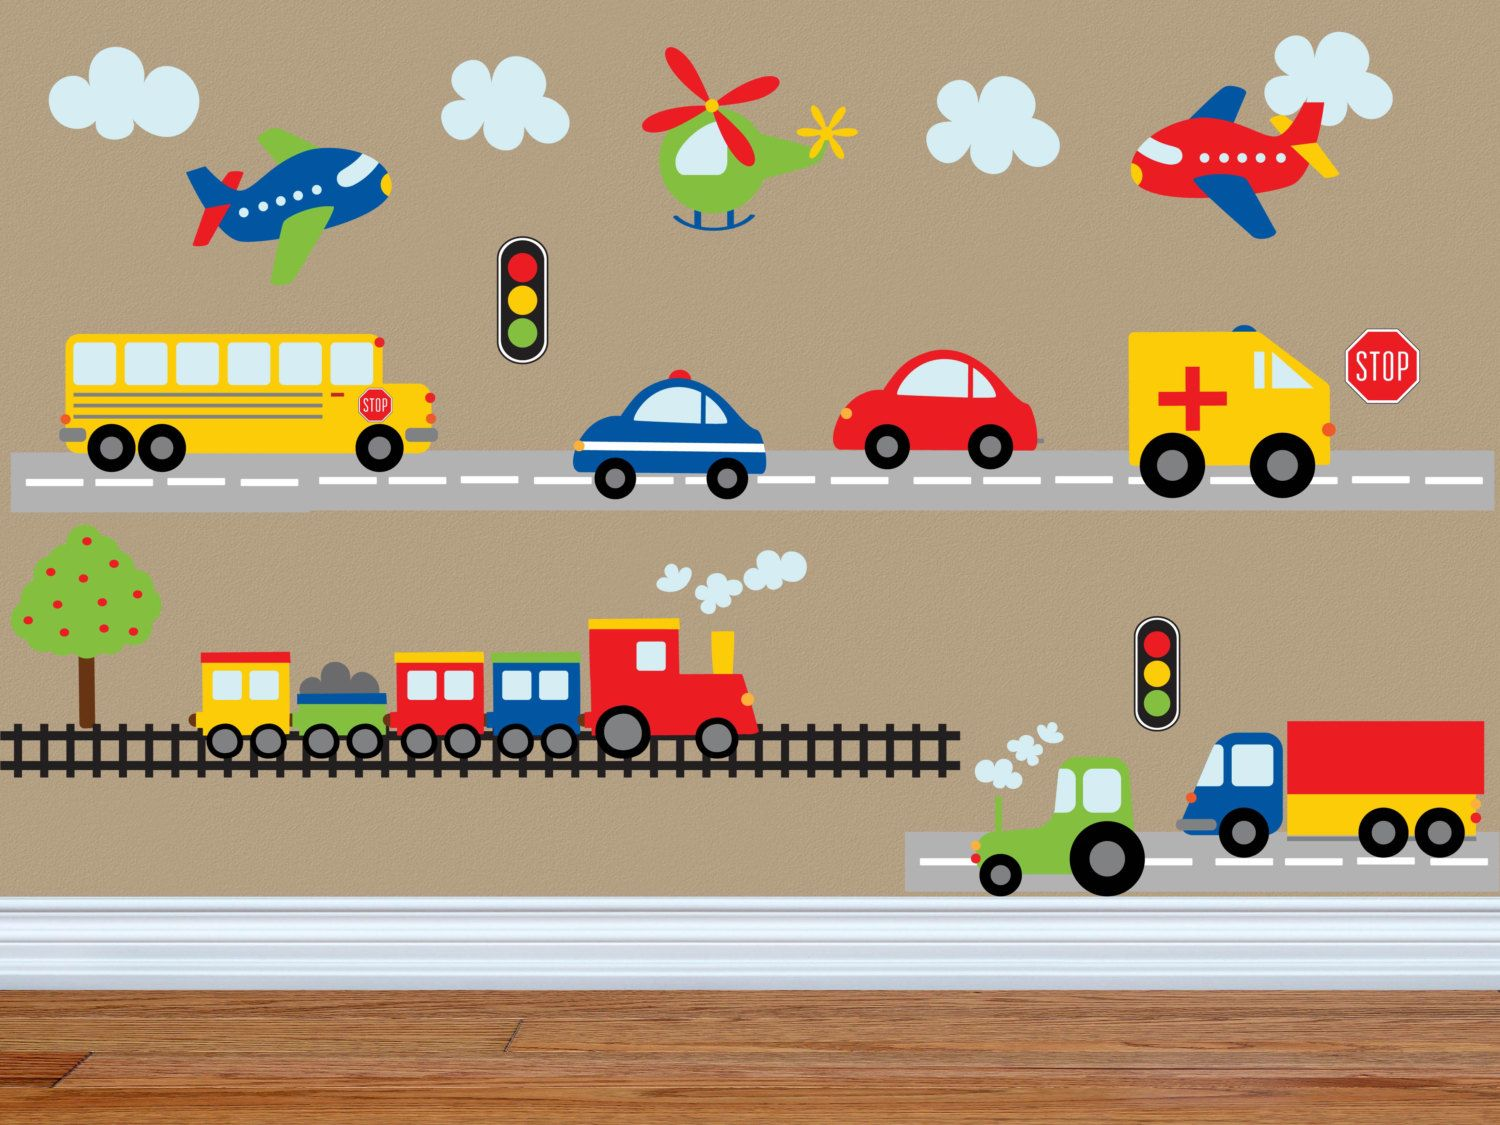 Car decal construction wall decal bus decal by yendoprint on etsy car decal construction wall decal bus decal by yendoprint on etsy amipublicfo Gallery